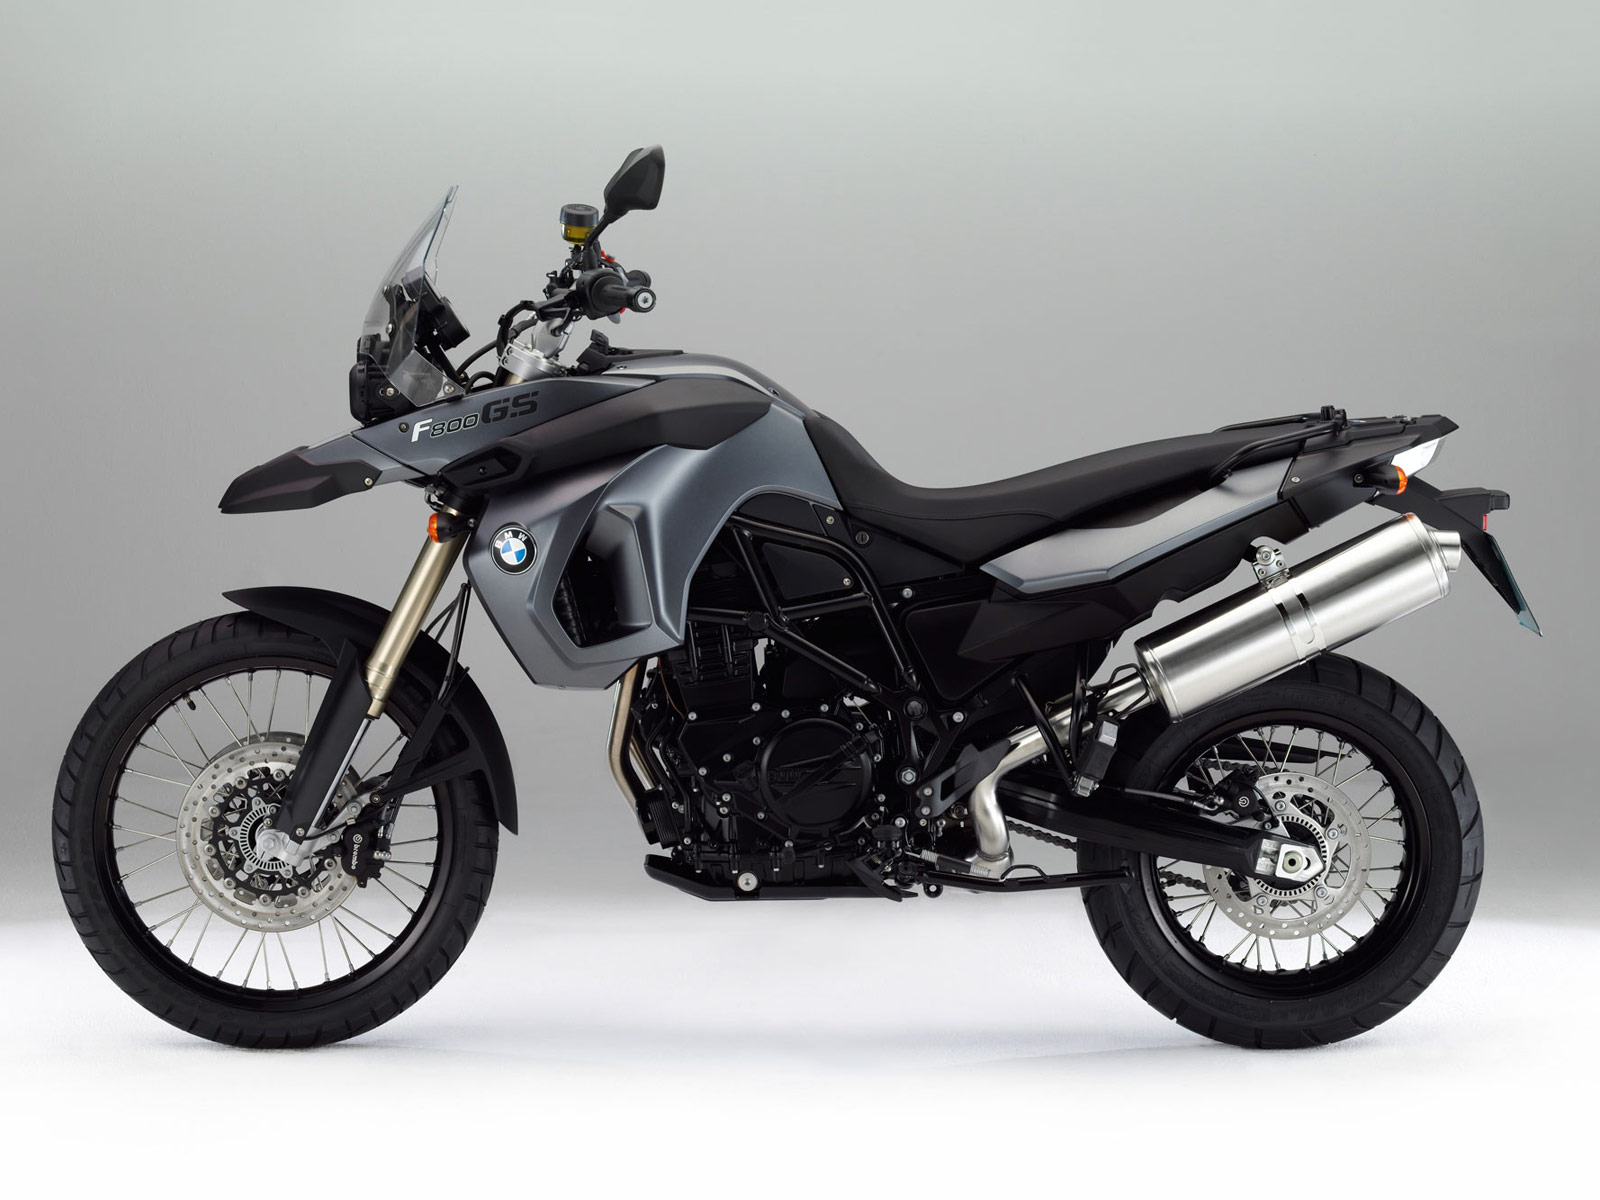 2012 bmw f800gs insurance information. Black Bedroom Furniture Sets. Home Design Ideas